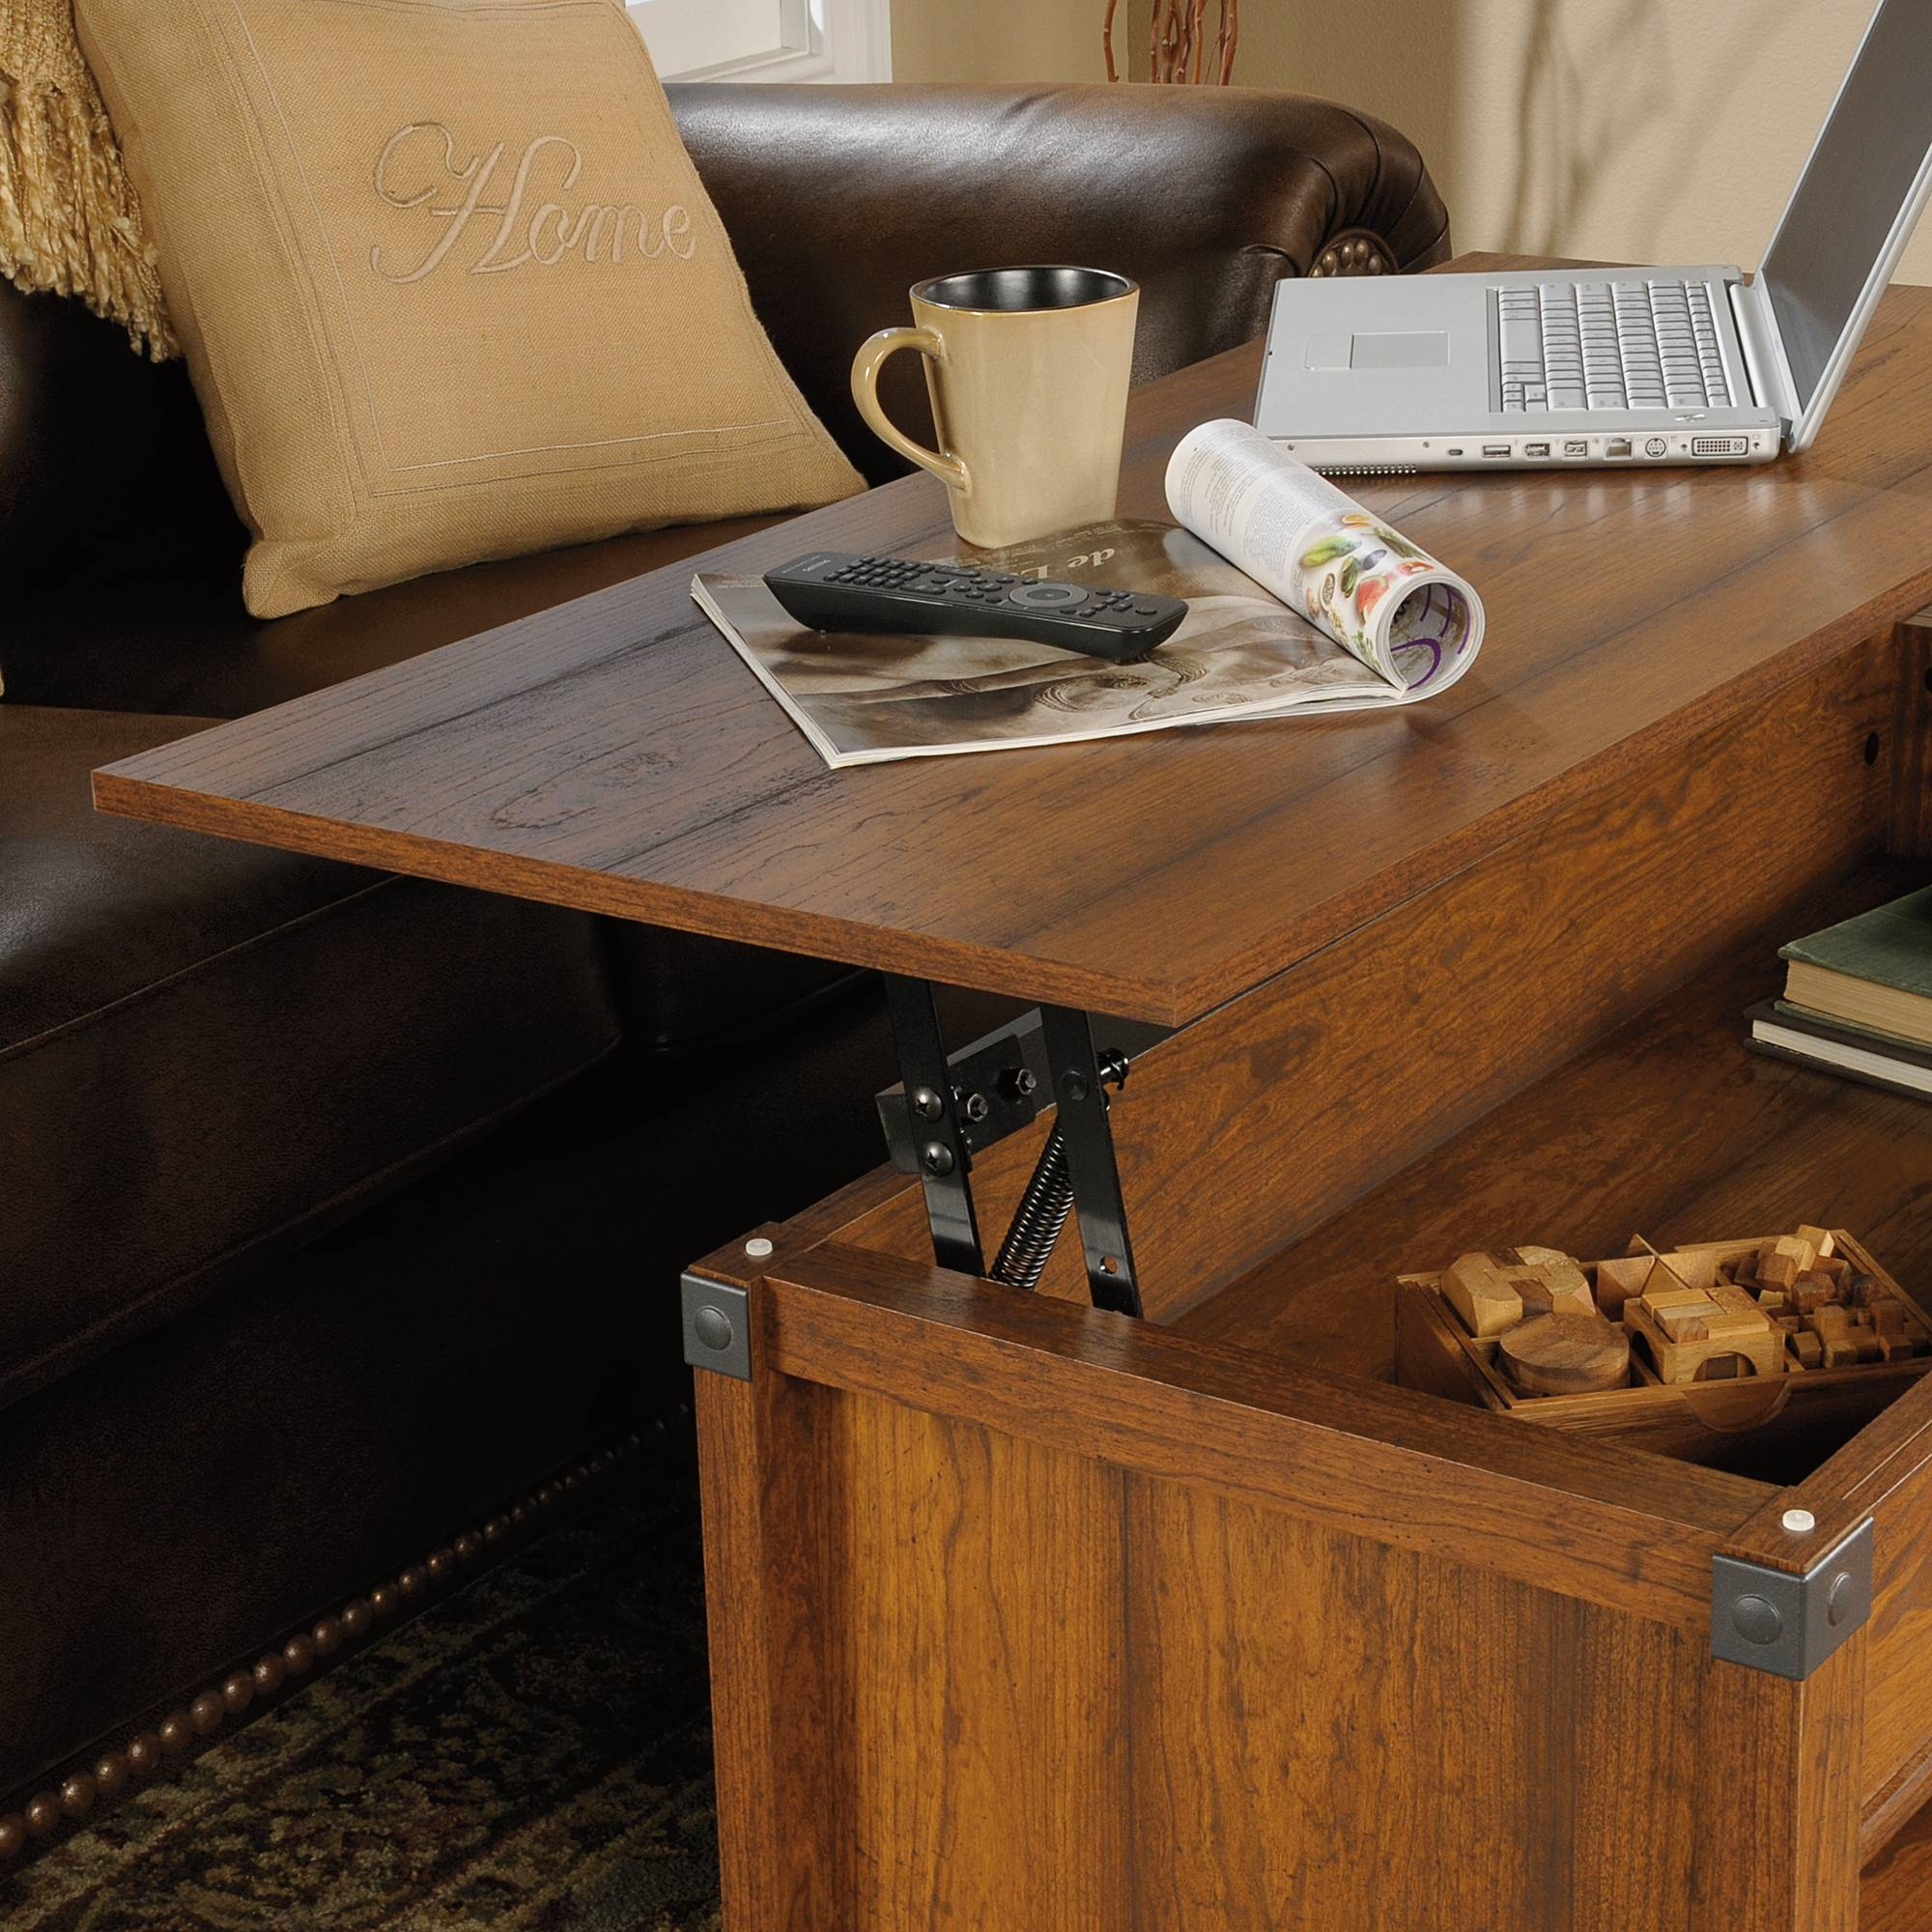 Carson Forge | Lift-Top Coffee Table | 414444 | Sauder with regard to Lift Top Coffee Tables (Image 3 of 30)